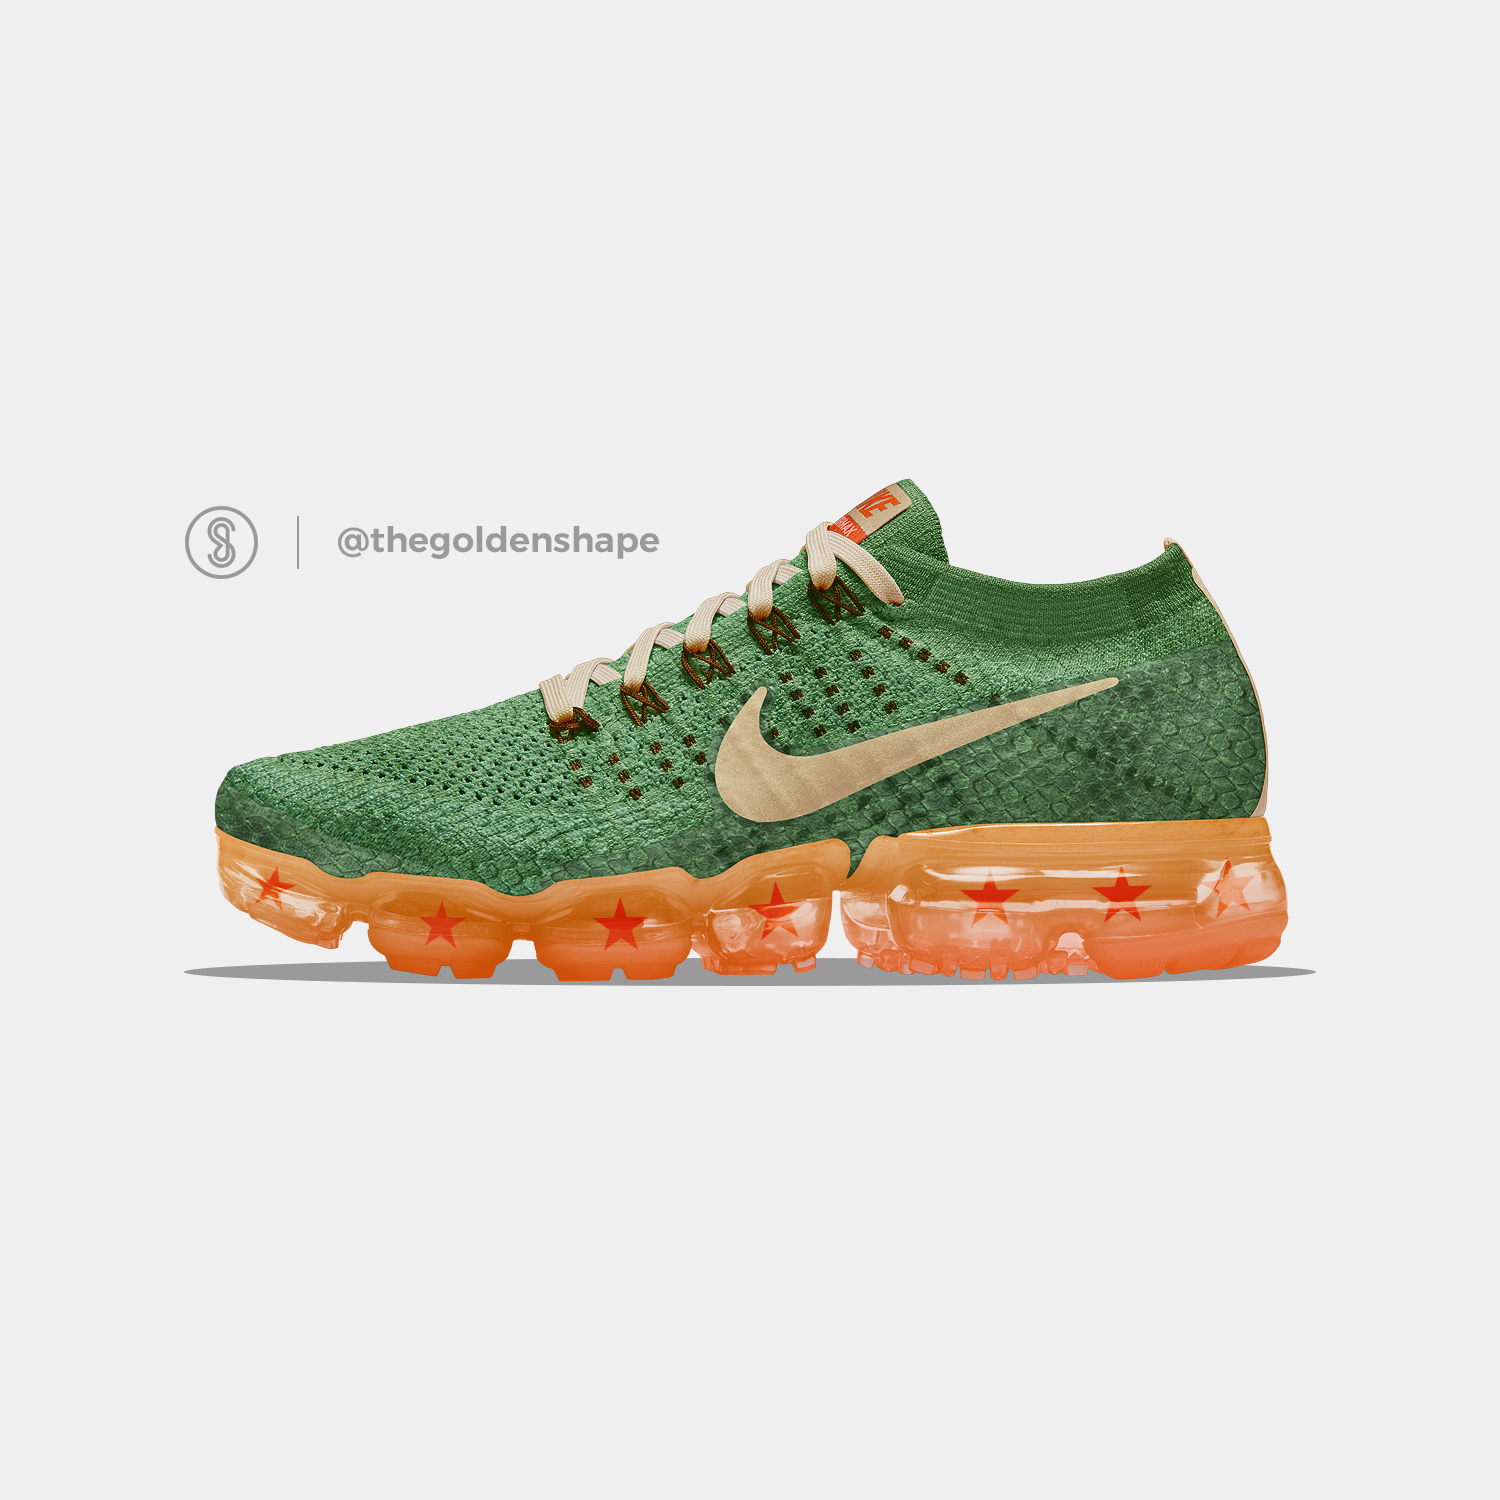 low priced 80834 d5324 Dragon Ball Super x Nike Air VaporMax Shenron